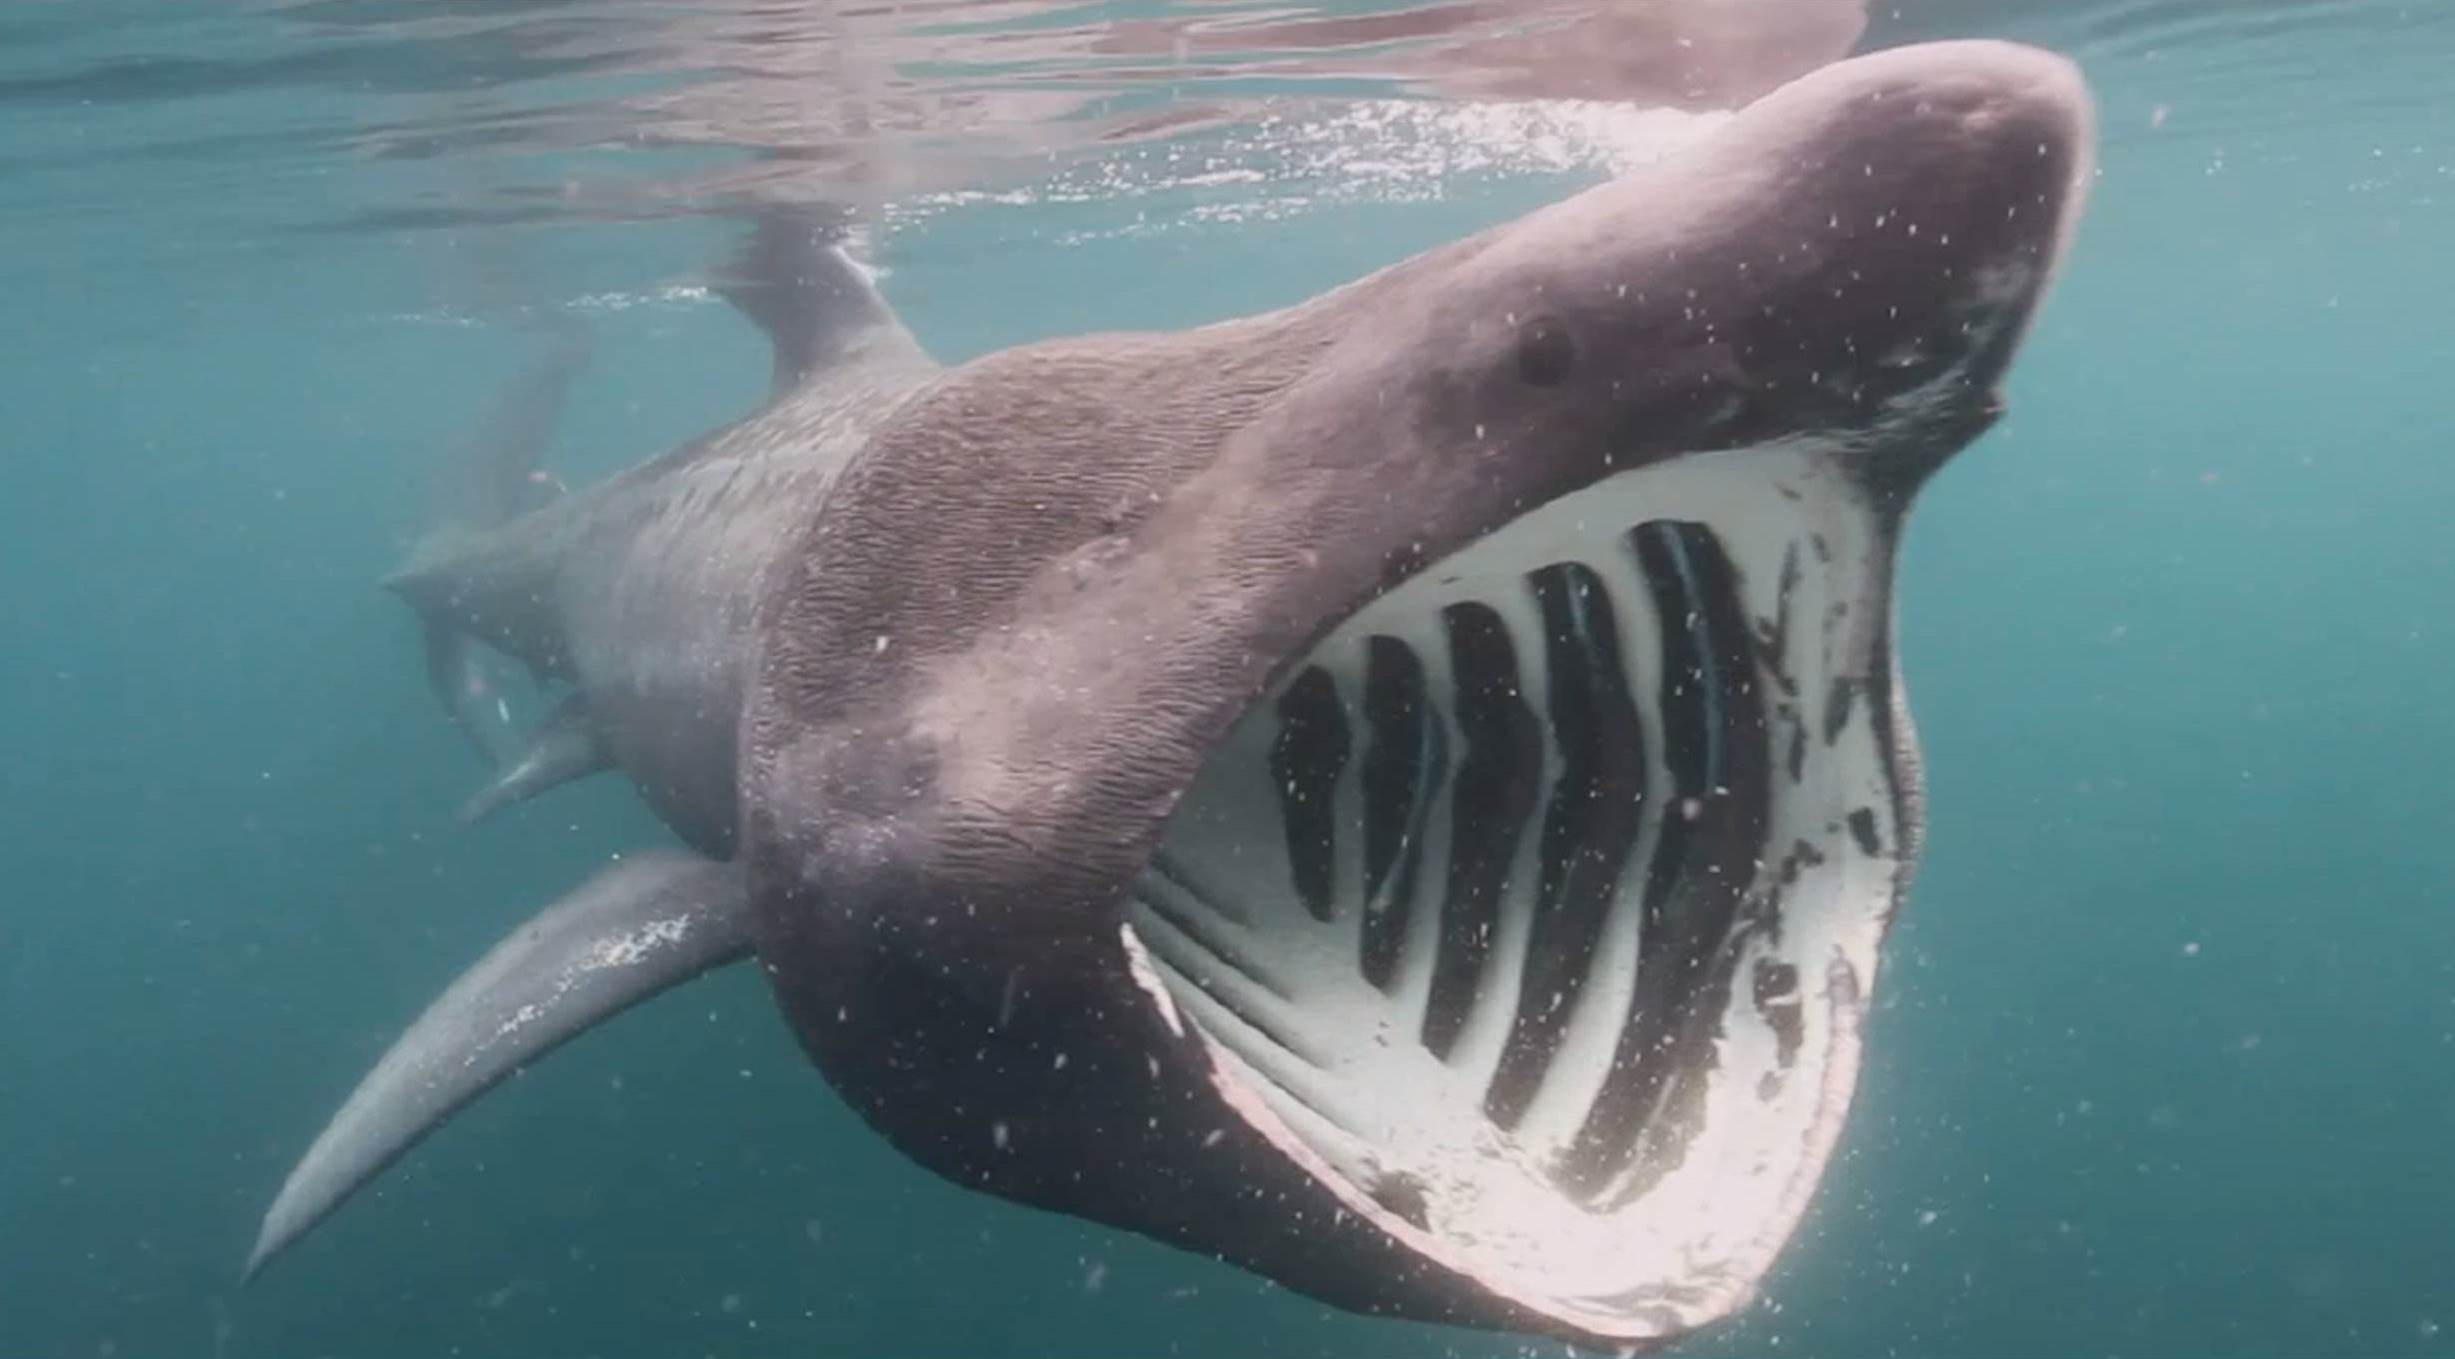 Basking sharks are the second-largest fish and feed on plankton they filter with their enormous mouths. (Photo: Philip Doherty.)